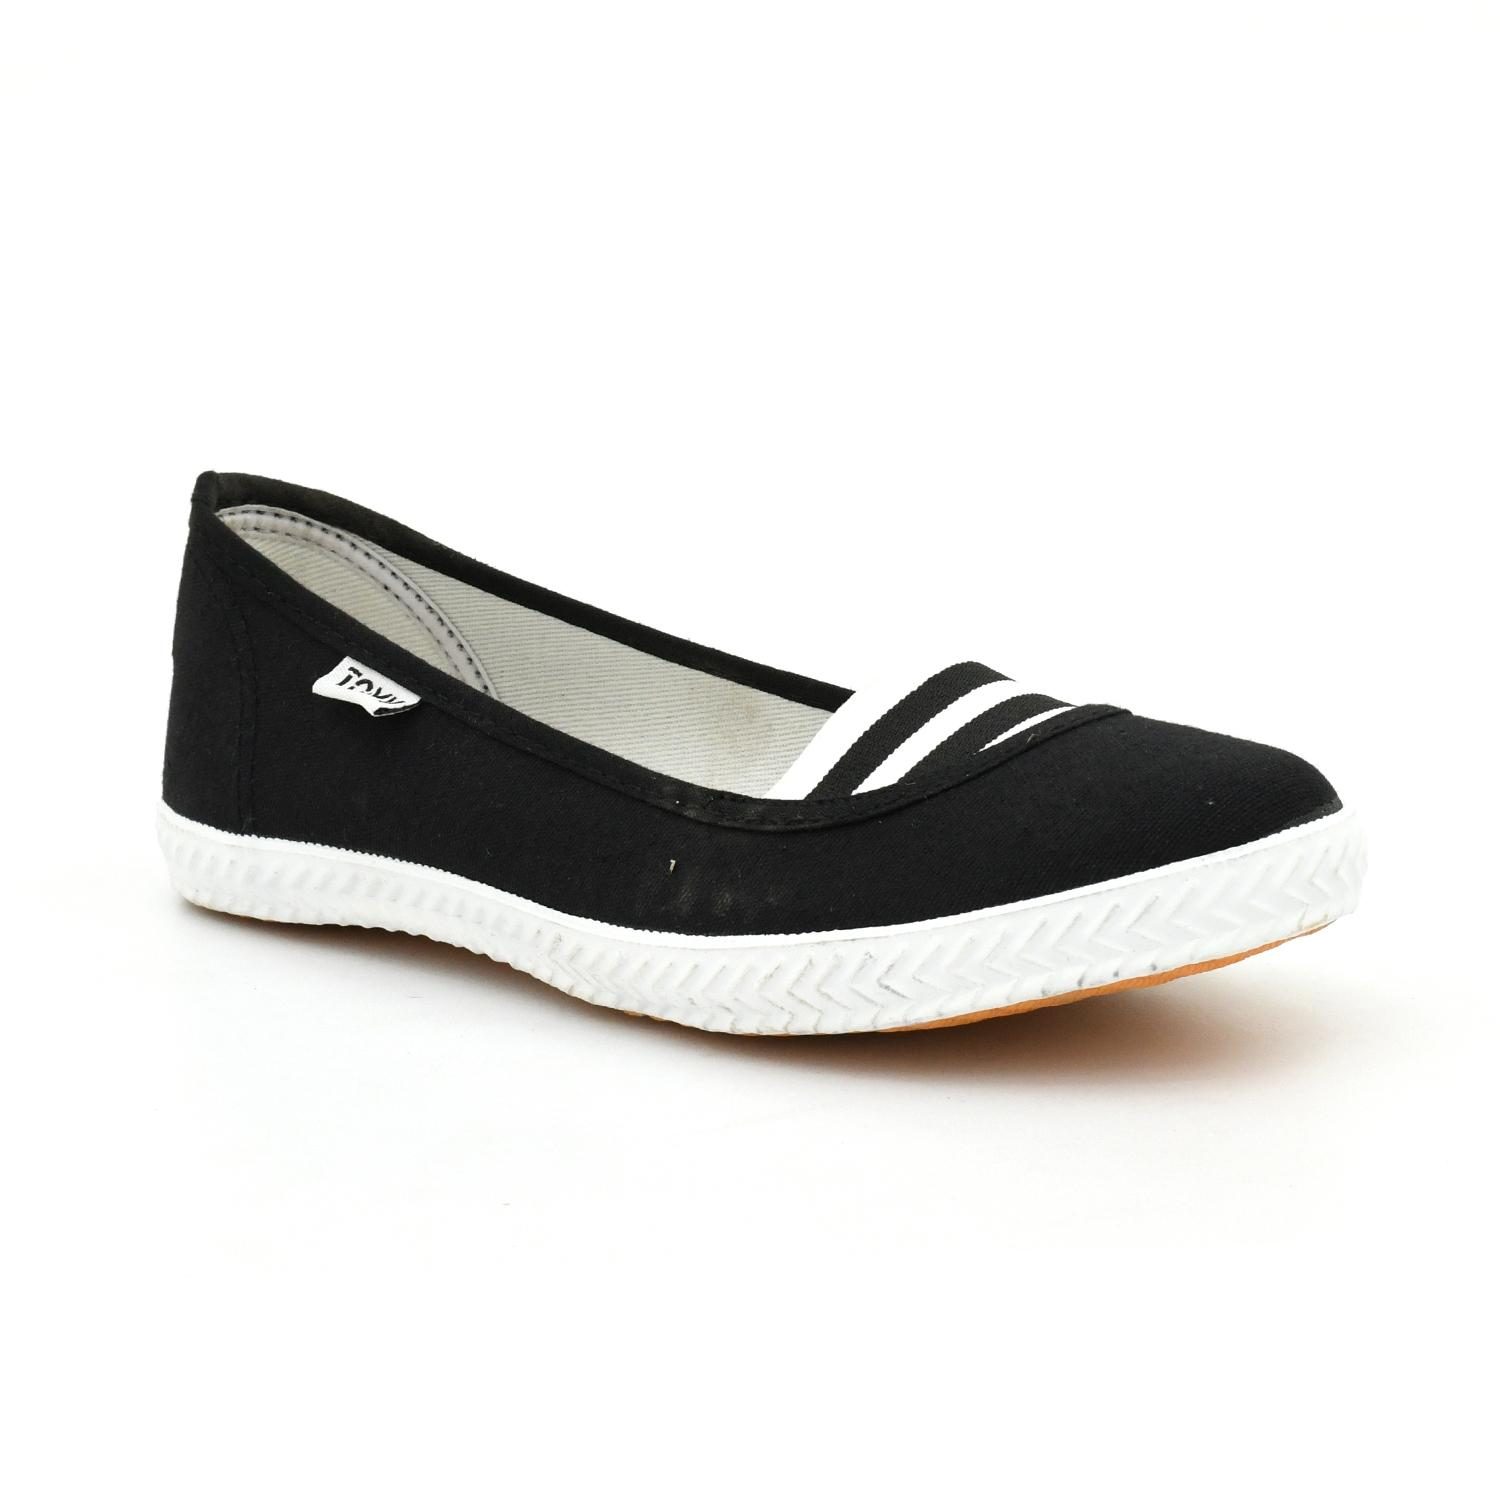 North Star Black Casual Synthetic Tomy Takkies Shoes for Women